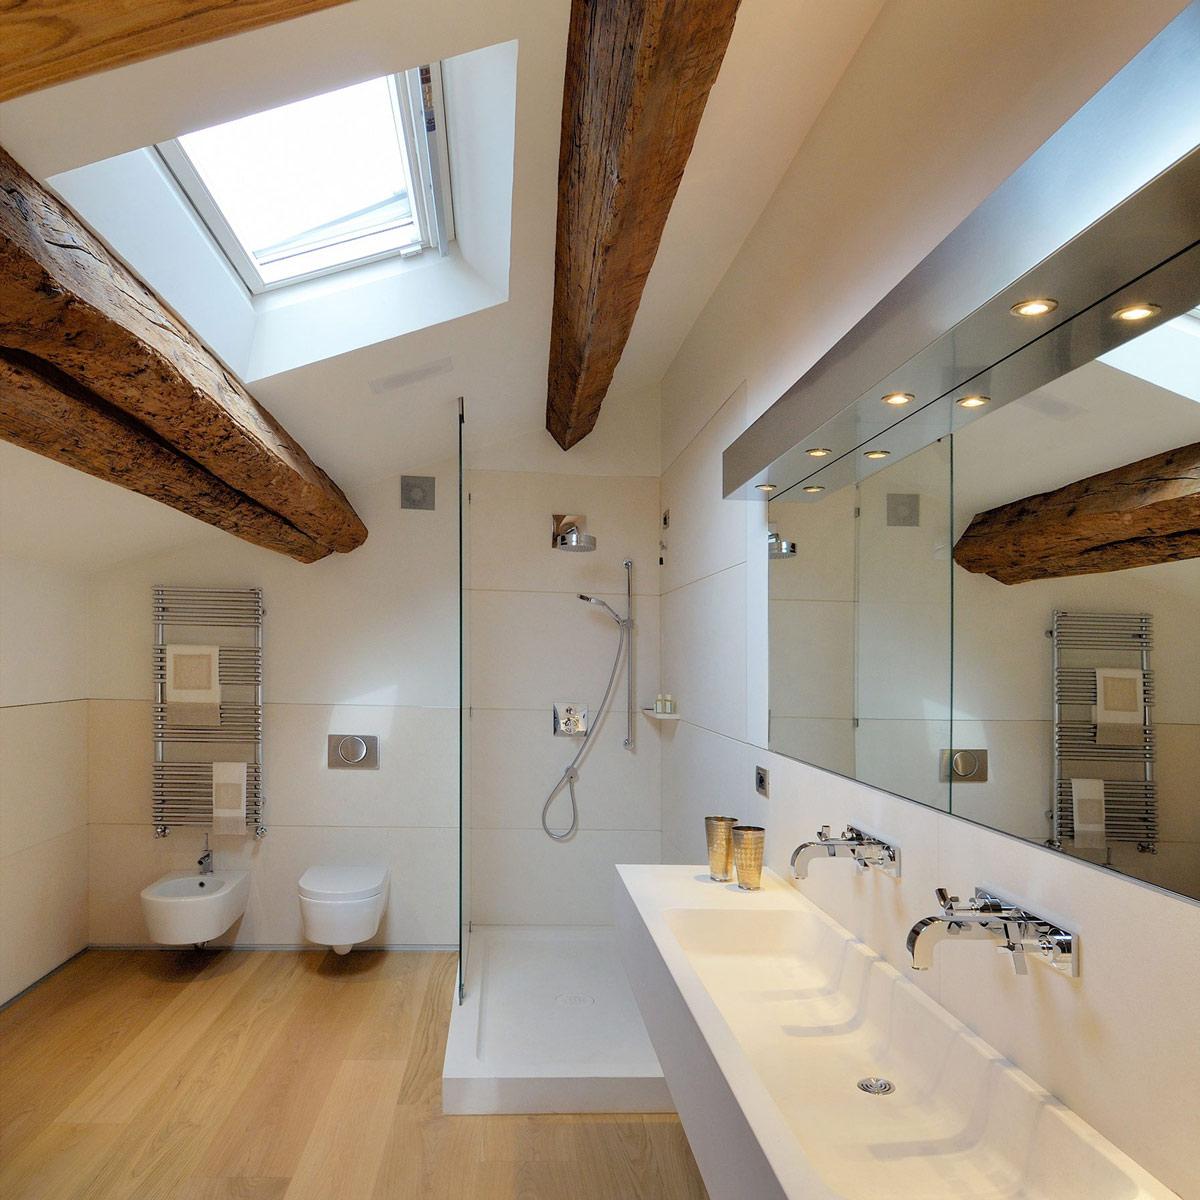 Bathroom, Shower, Beams, Penthouse in Udine, Italy by Menzo Architettura & Design